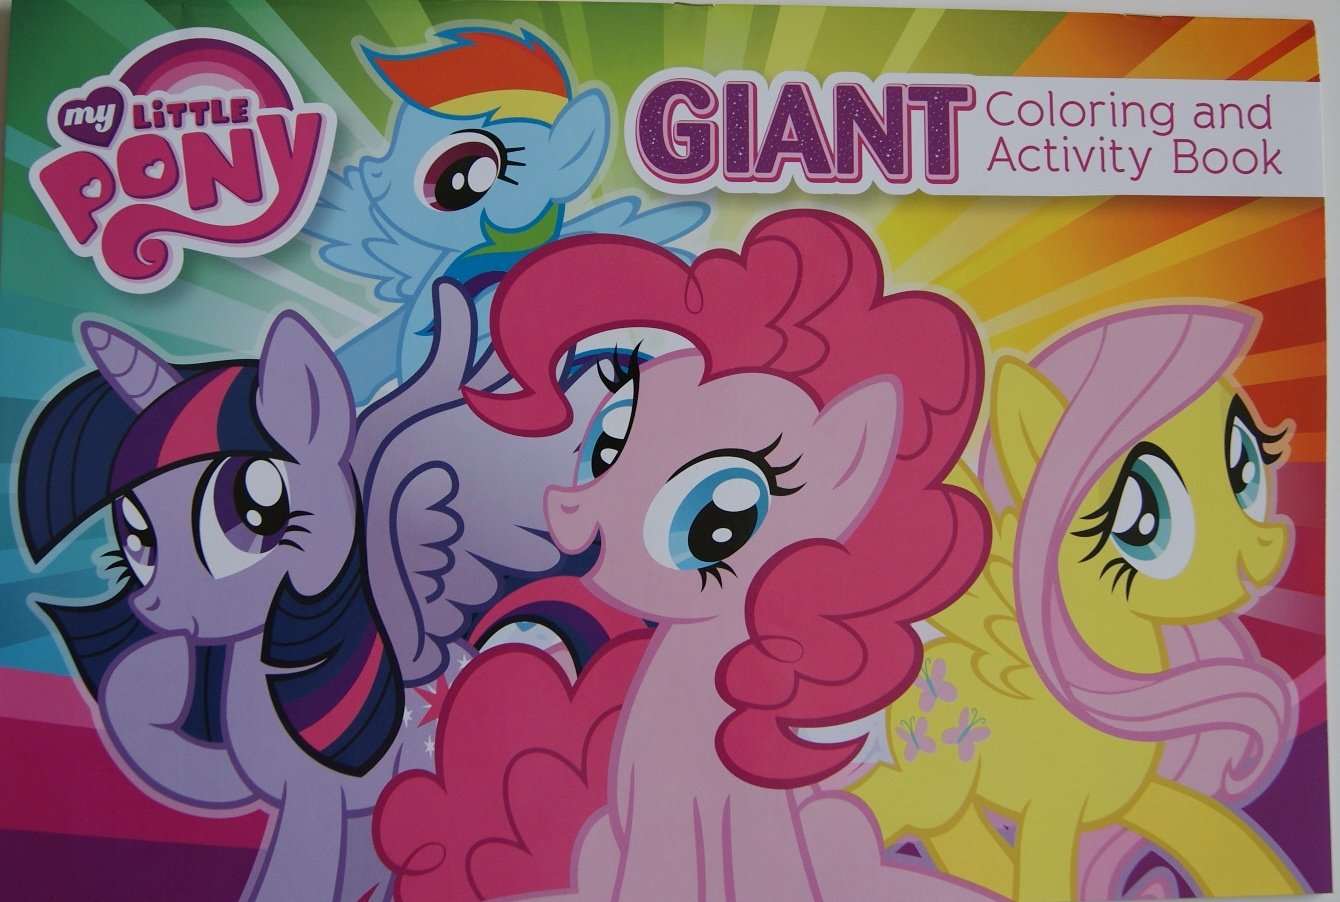 my-little-pony-giant-coloring-activity-book